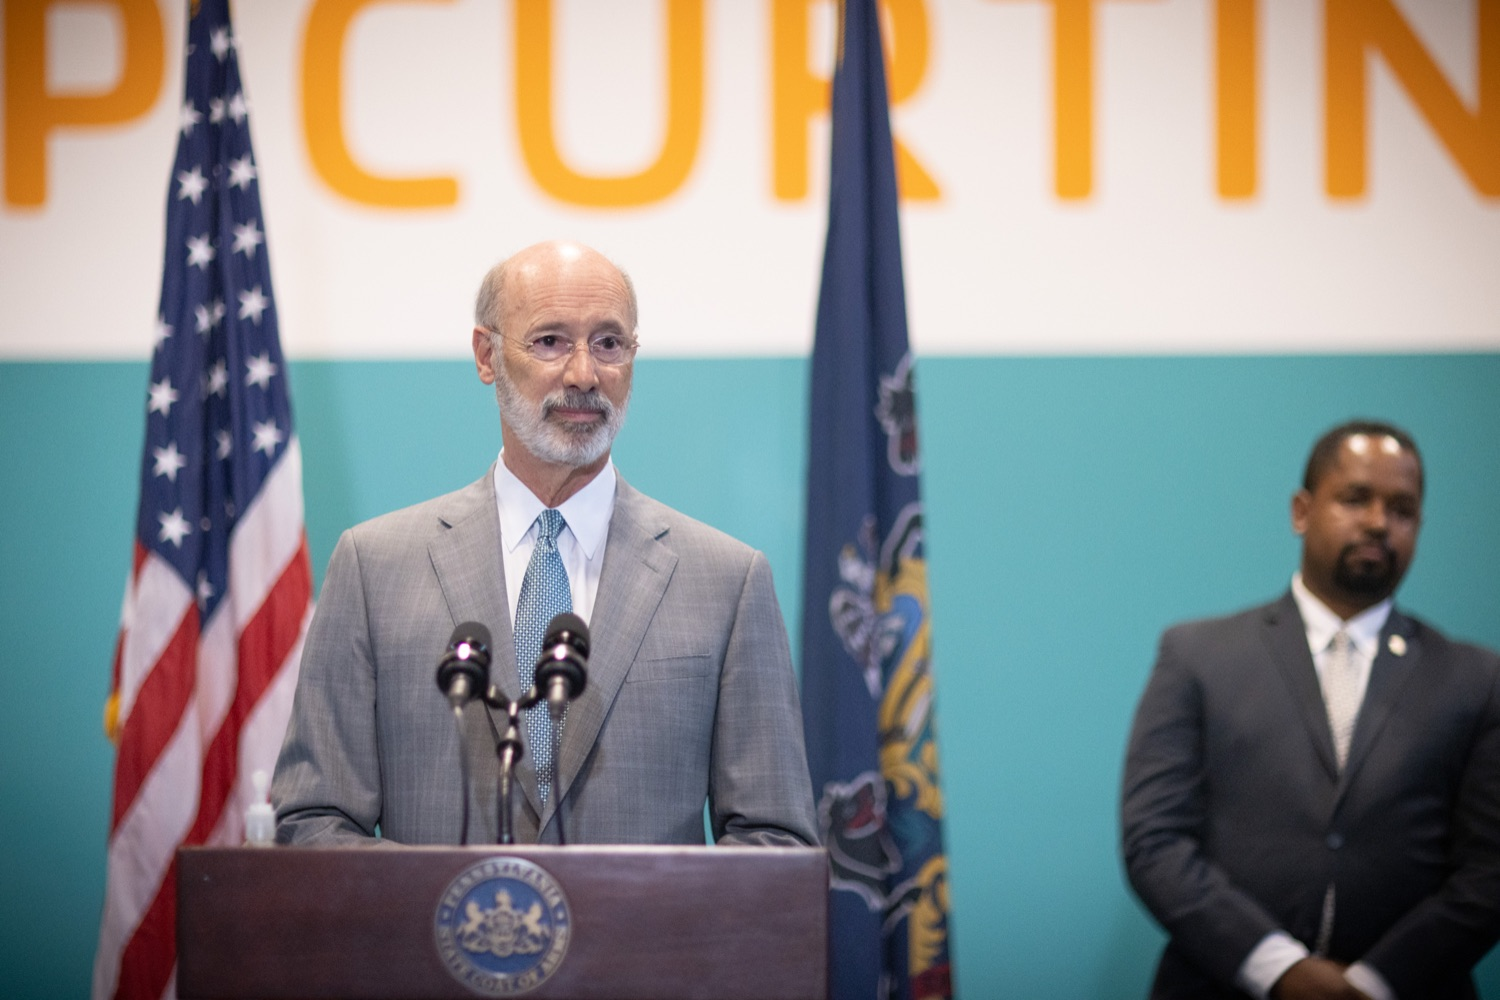 """<a href=""""https://filesource.wostreaming.net/commonwealthofpa/photo/18815_gov_voterRights_dz_008.jpg"""" target=""""_blank"""">⇣Download Photo<br></a>Pennsylvania Governor Tom Wolf speaking with the press.  With some politicians spreading lies about our elections to divide us, Governor Tom Wolf today vowed to protect the freedom to vote and oppose legislation that would create barriers to voting and silence the voices of some Pennsylvanians. These are the same lies that led directly to the appalling assault on our U.S. Capitol and our democracy on January 6, and now, just a few short months later, the same people who fomented, encouraged, and joined that mob are again emerging to undermine the fabric of our nation.   Harrisburg, PA  June 9, 2021"""